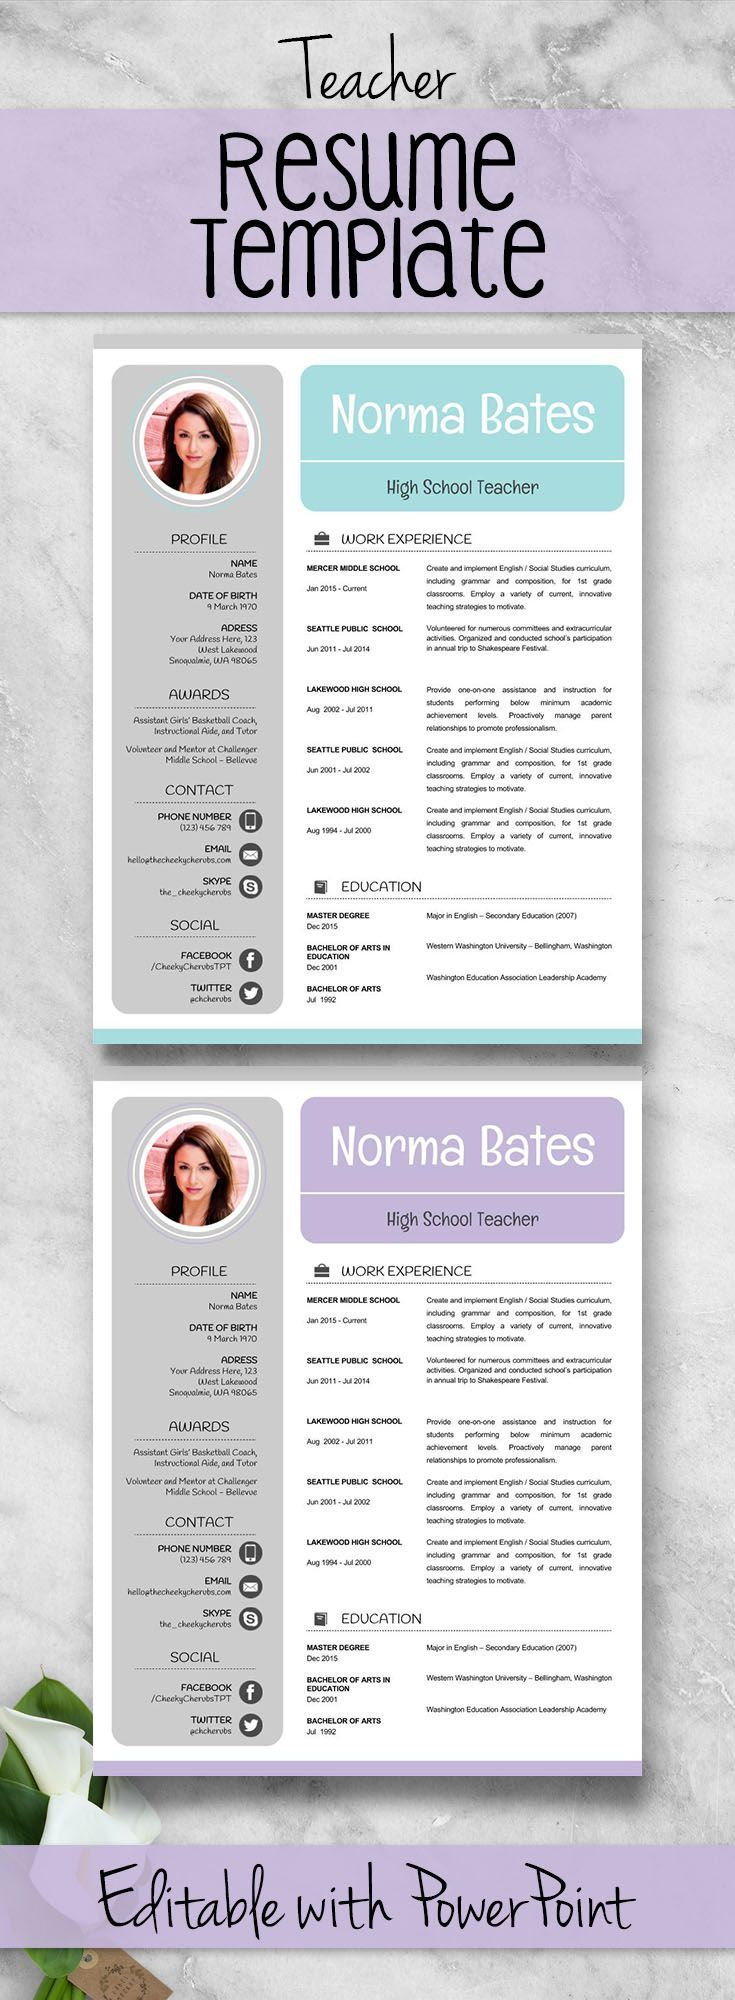 Neat Teacher Resume Template + Cover Letter + References PowerPoint ...